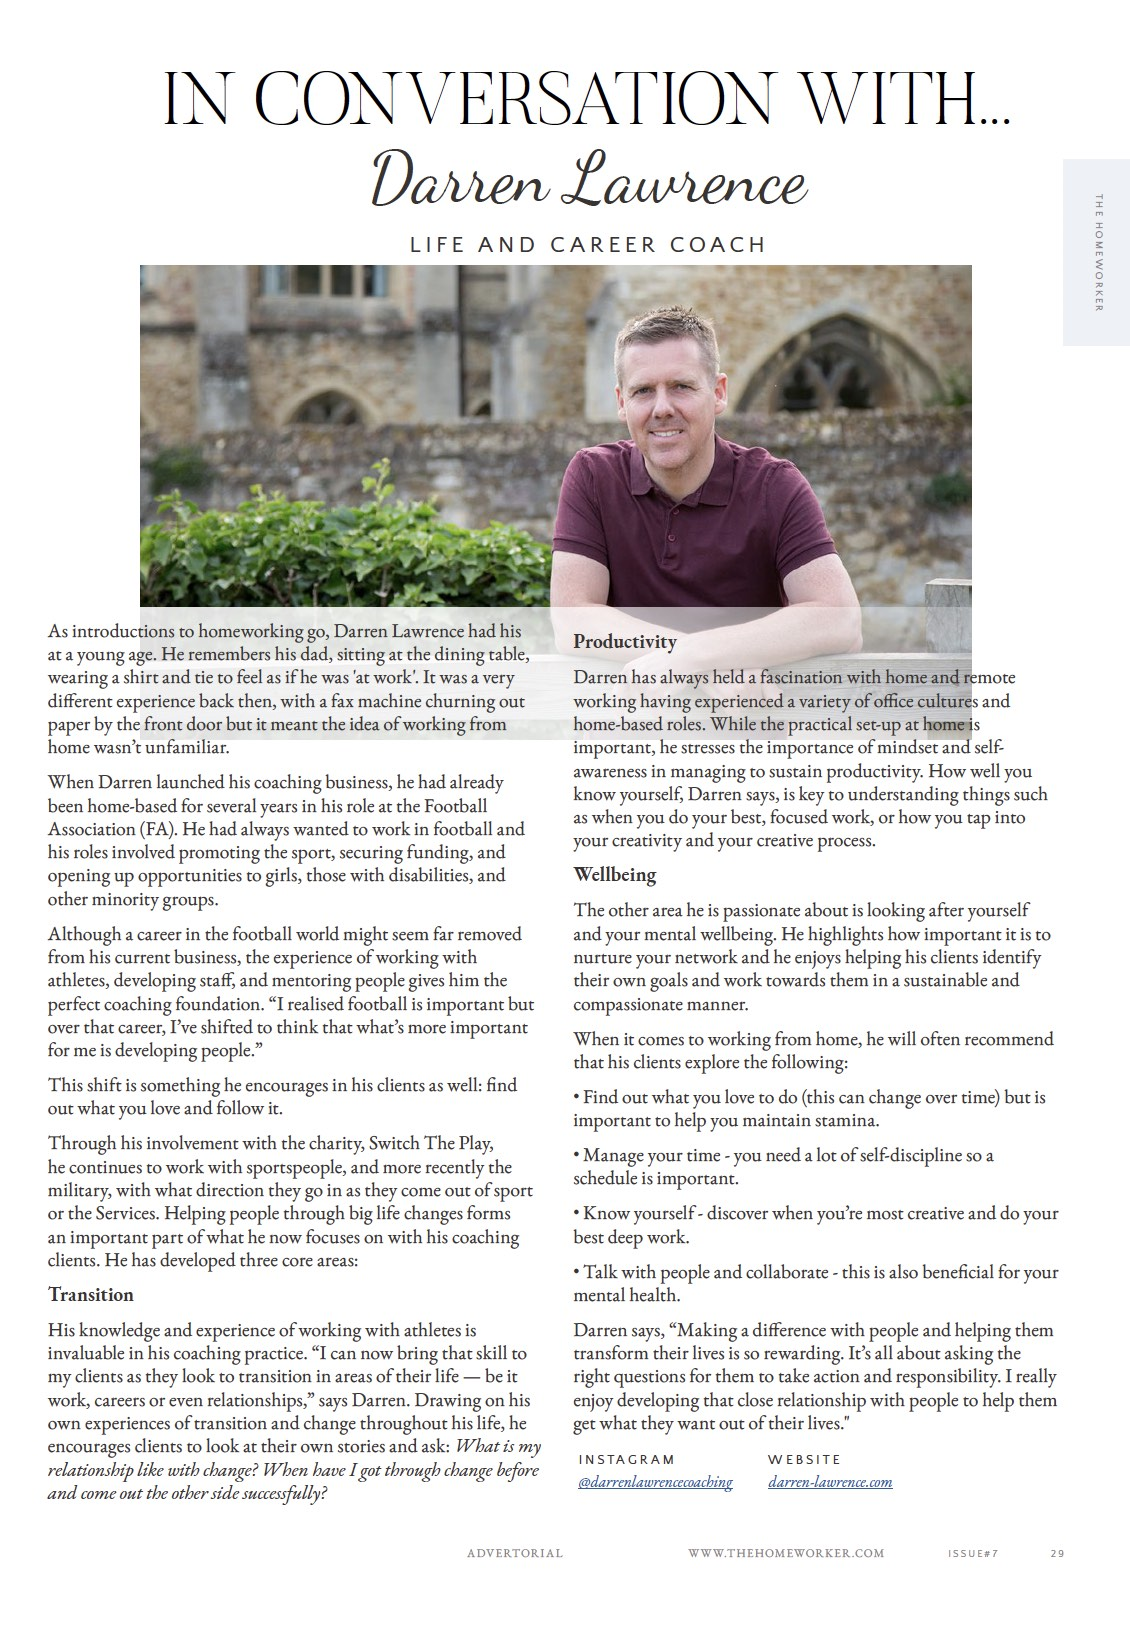 Interview life coach Darren Lawrence in The Homeworker magazine, sharing tips on making the change to work from home.